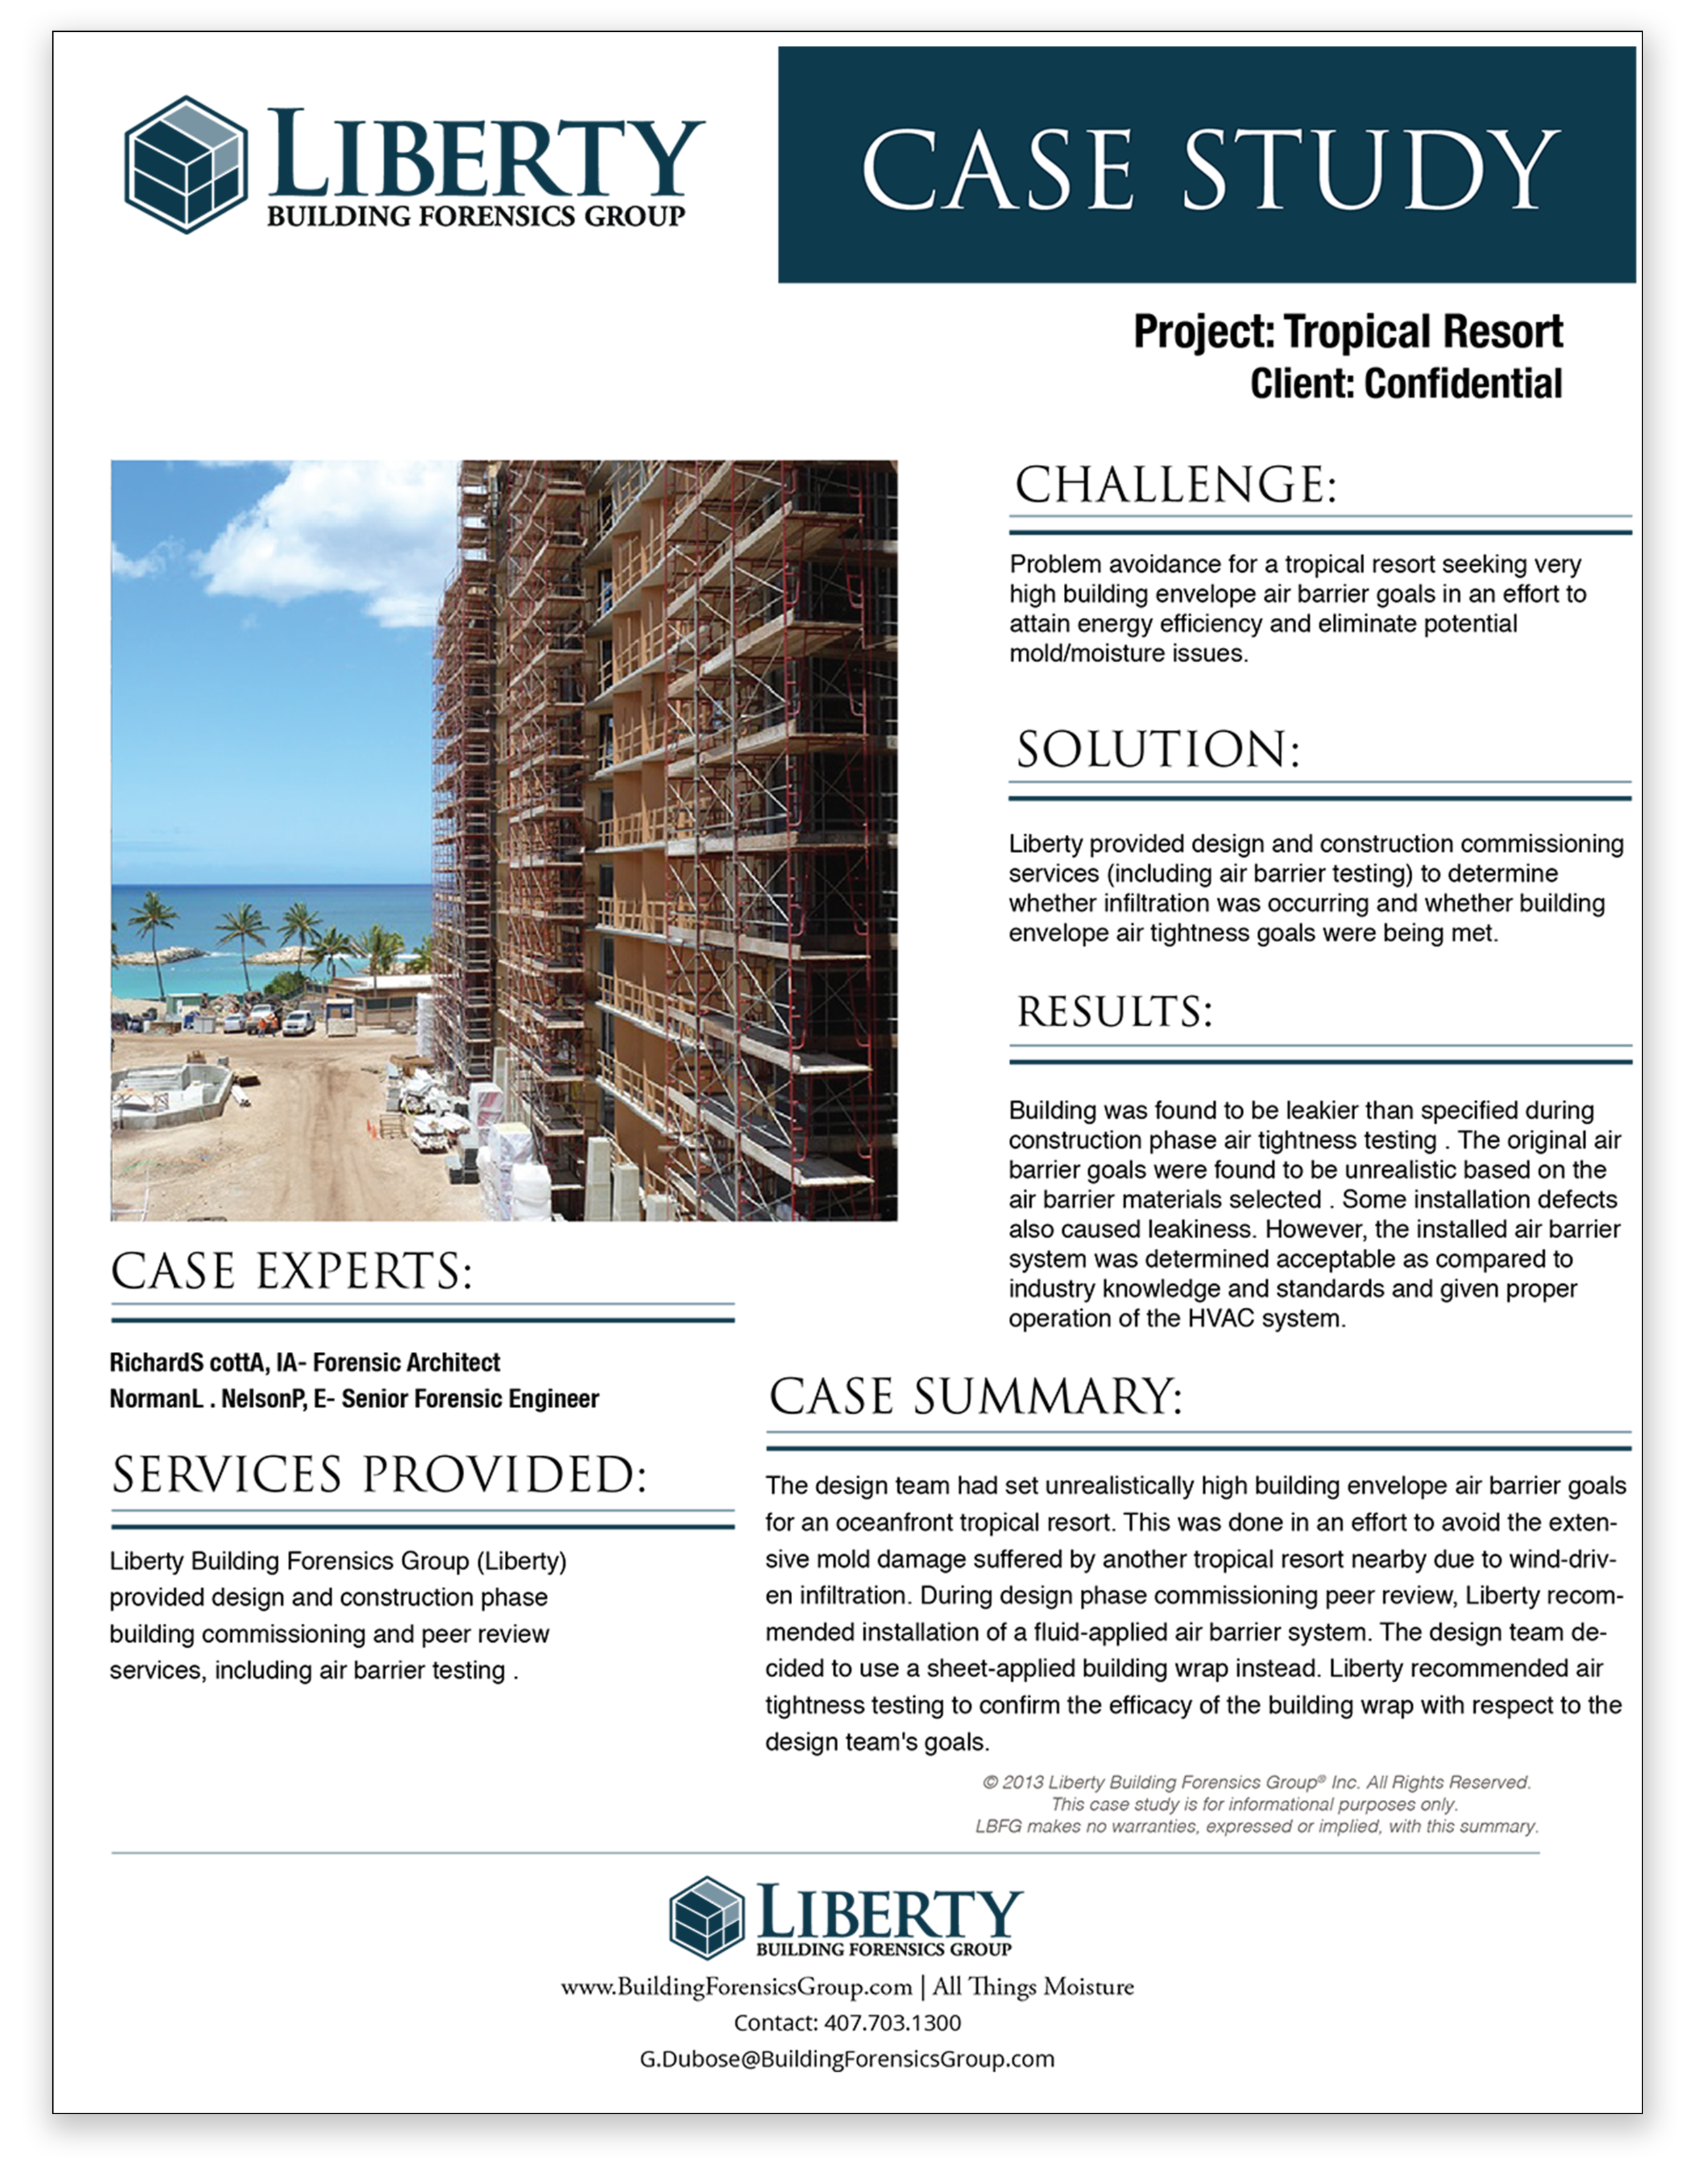 Case Study - Tropical Resort_201309@2x.png